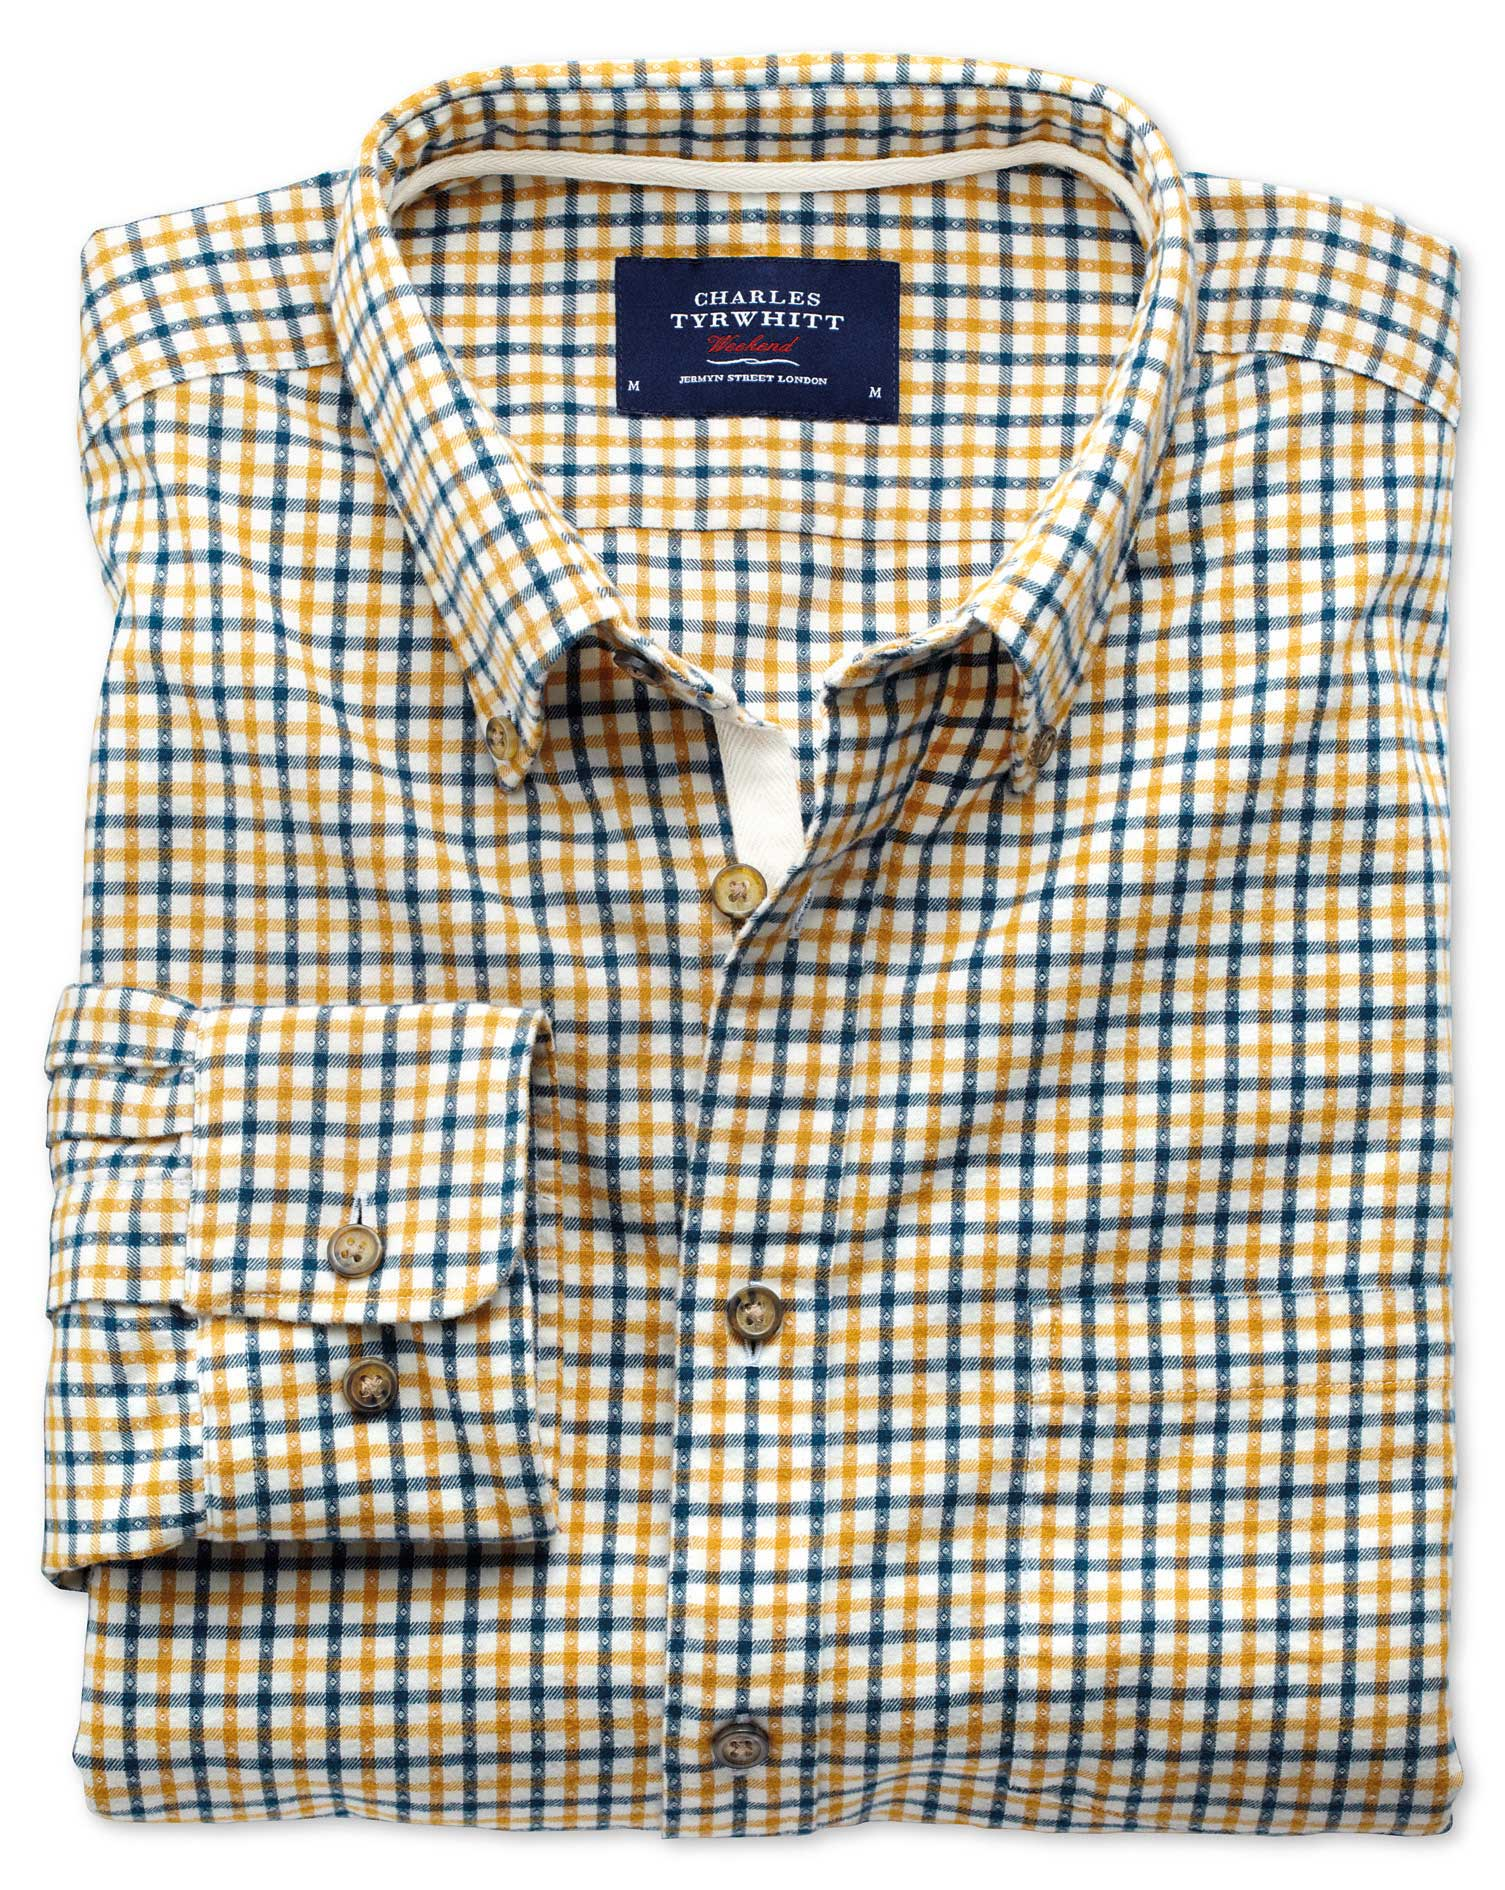 Slim Fit Gold and Blue Check Brushed Dobby Cotton Shirt Single Cuff Size Large by Charles Tyrwhitt